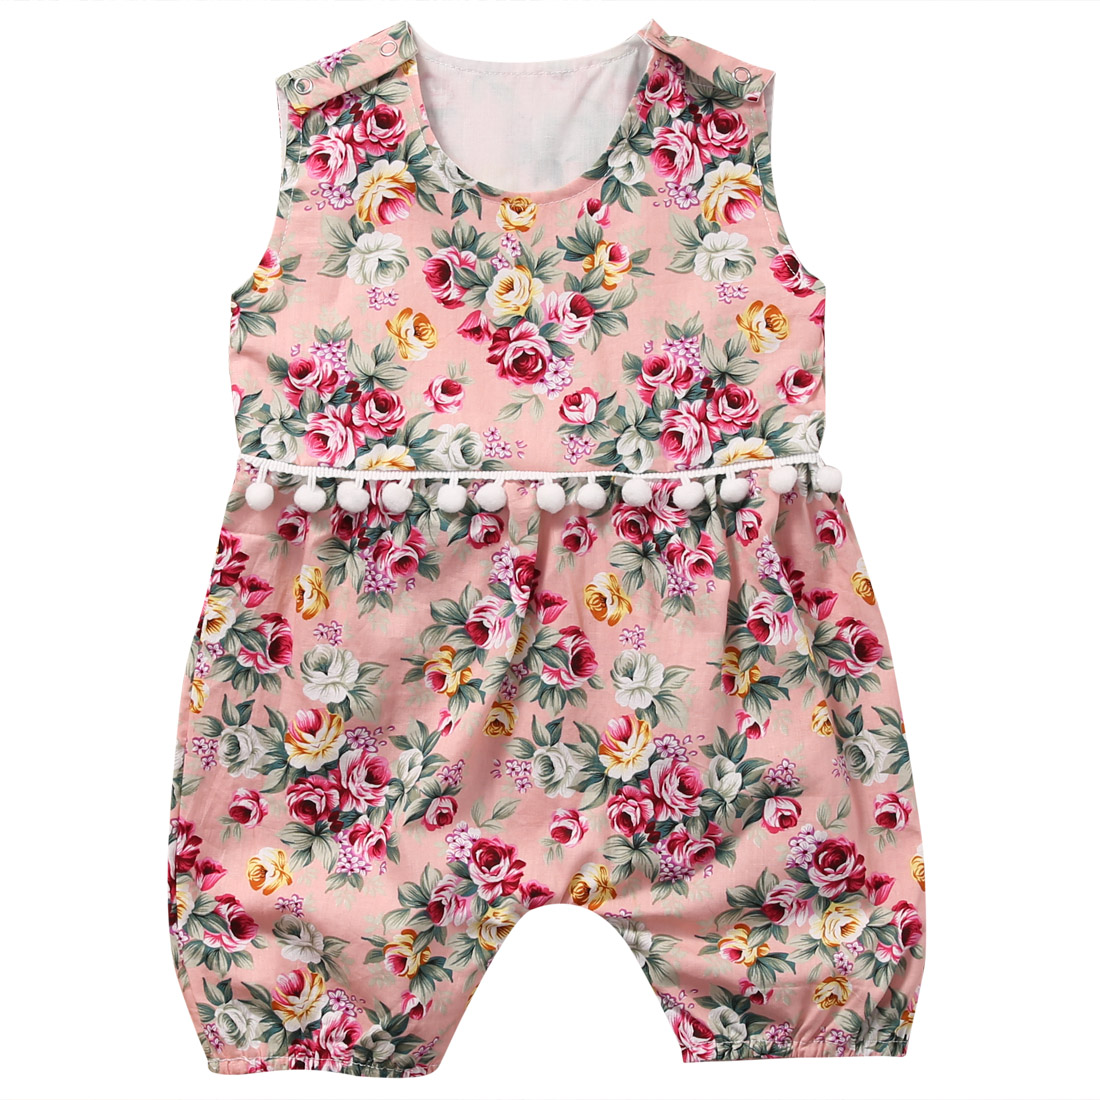 Summer Newborn Baby Girls Floral Romper Sleeveless Flower Tassels Rompers Jumpsuit Sunsuit Clothes Infant Clothing 0-18M newborn baby rompers baby clothing 100% cotton infant jumpsuit ropa bebe long sleeve girl boys rompers costumes baby romper